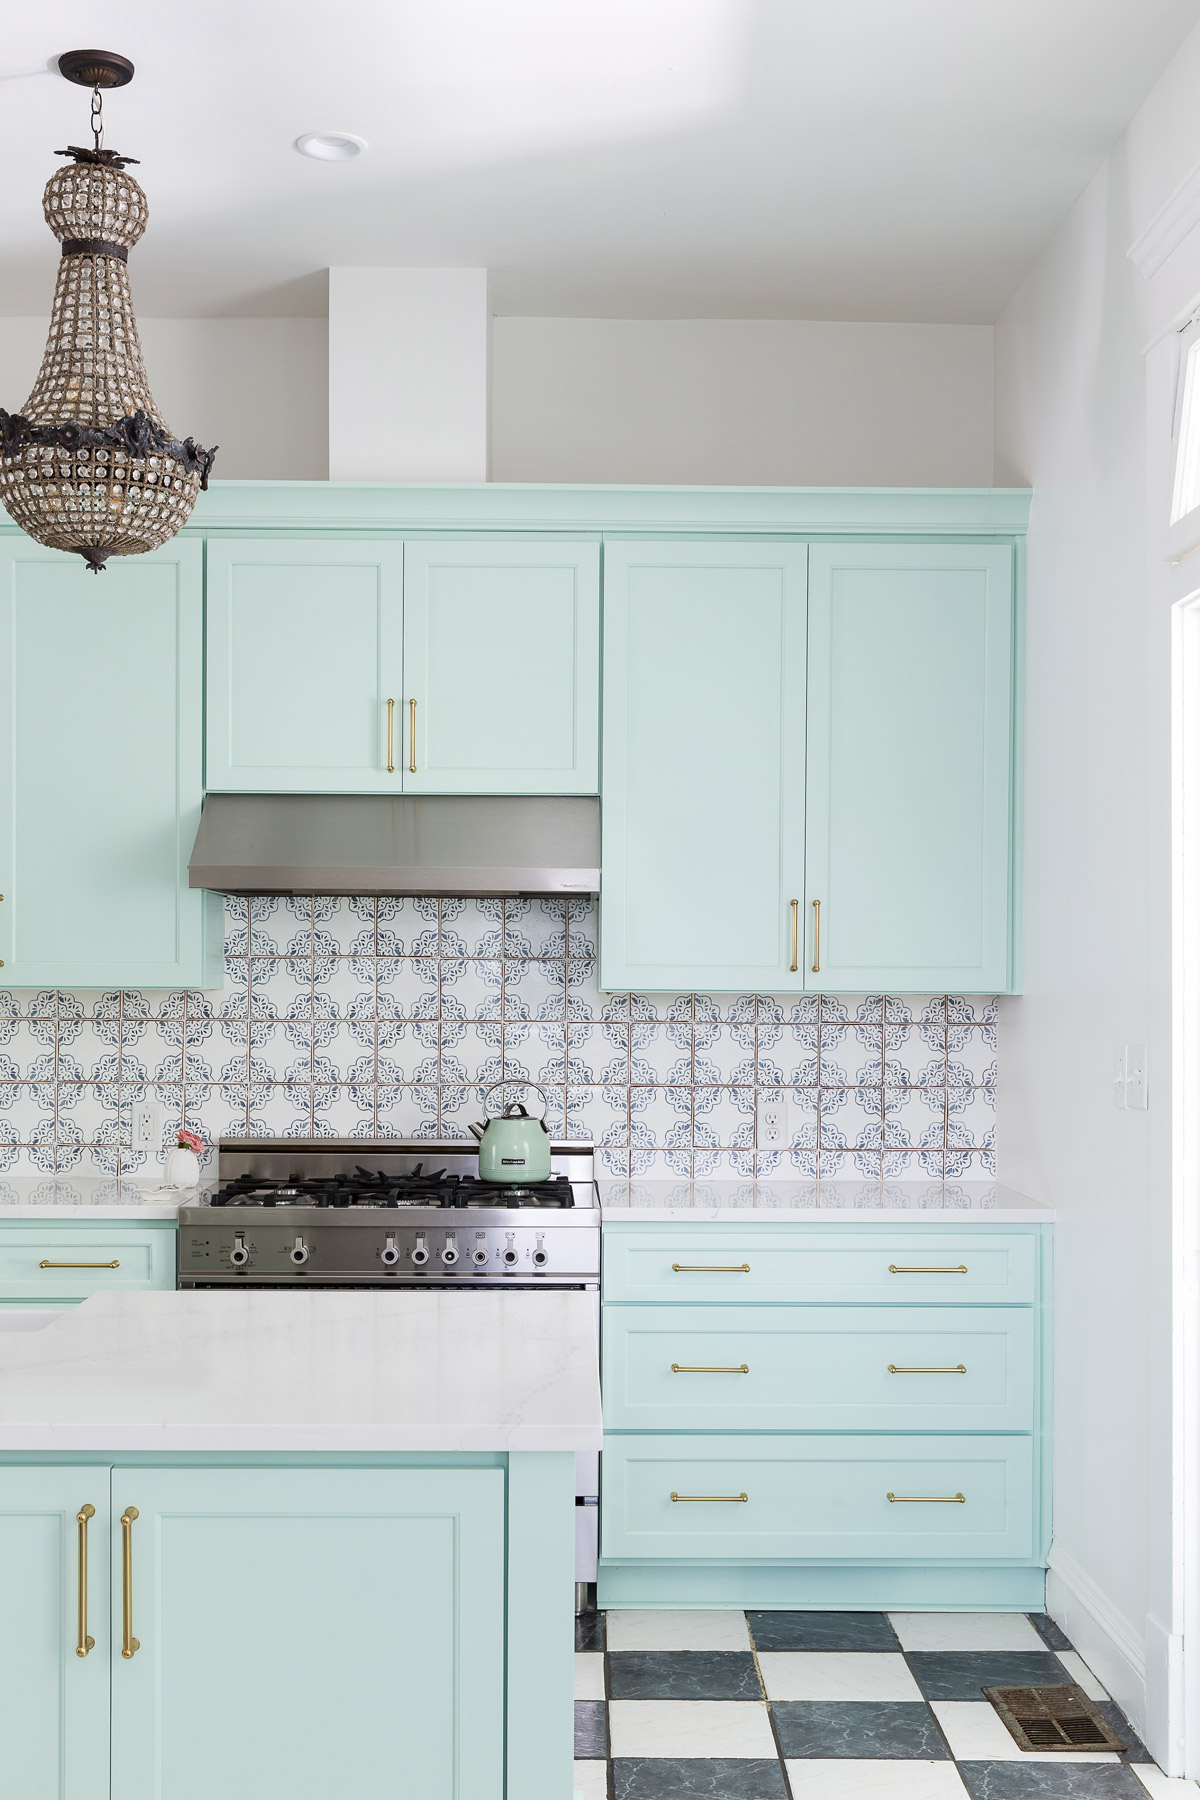 Mint Green Is The Unexpected Kitchen Cabinet Color Your Small Kitchen Needs Real Simple